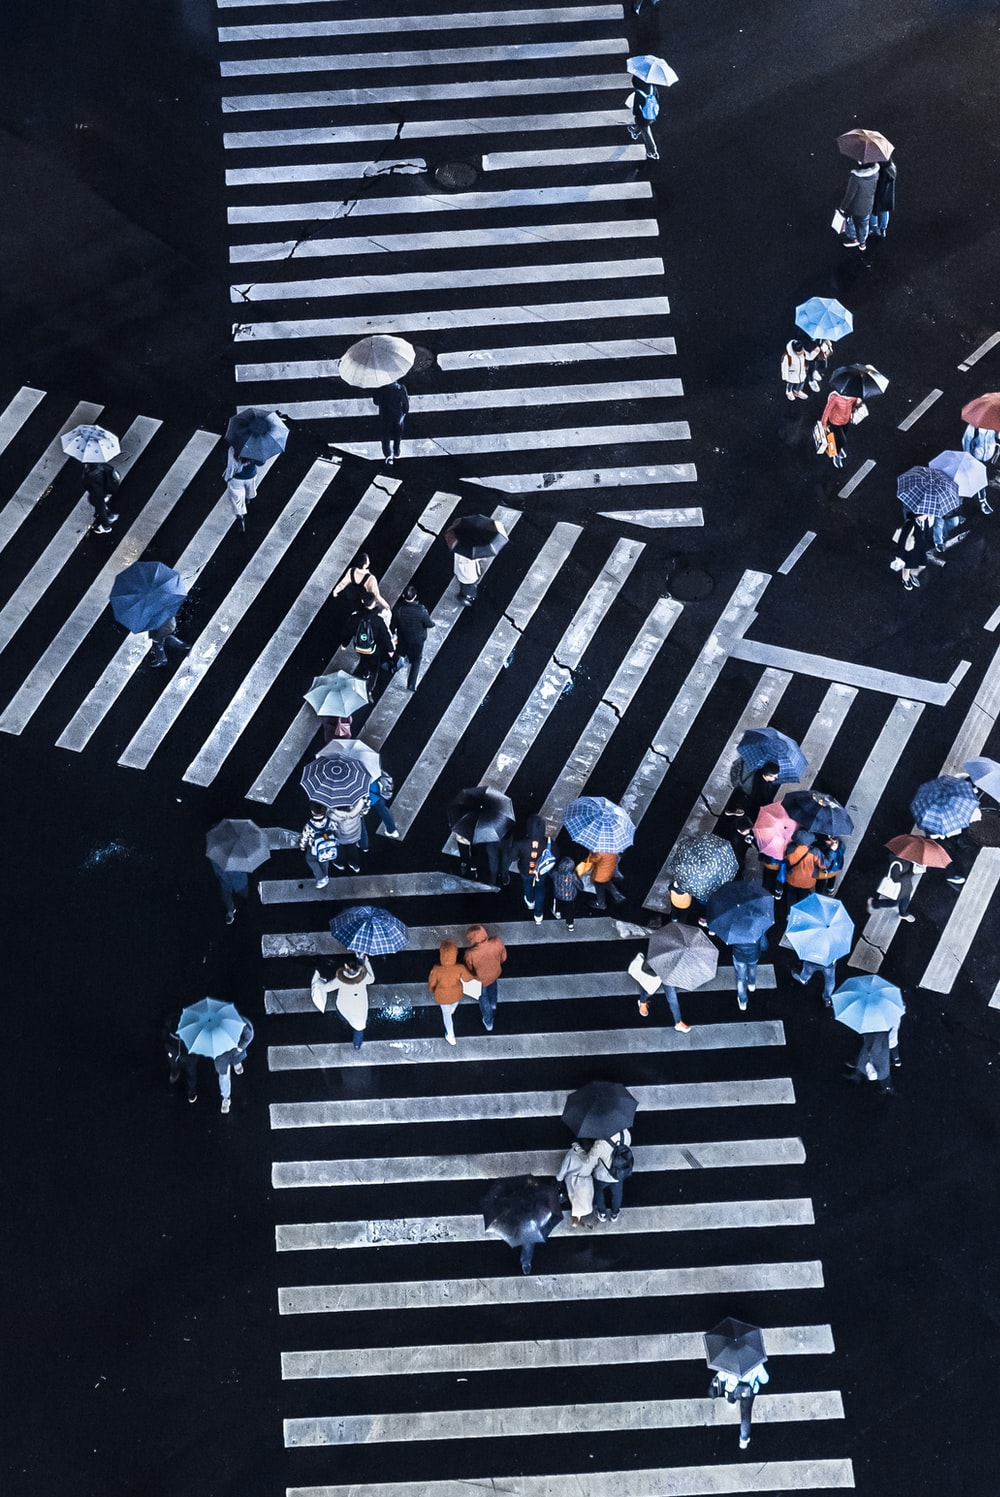 group of people crossing pedestrian lane